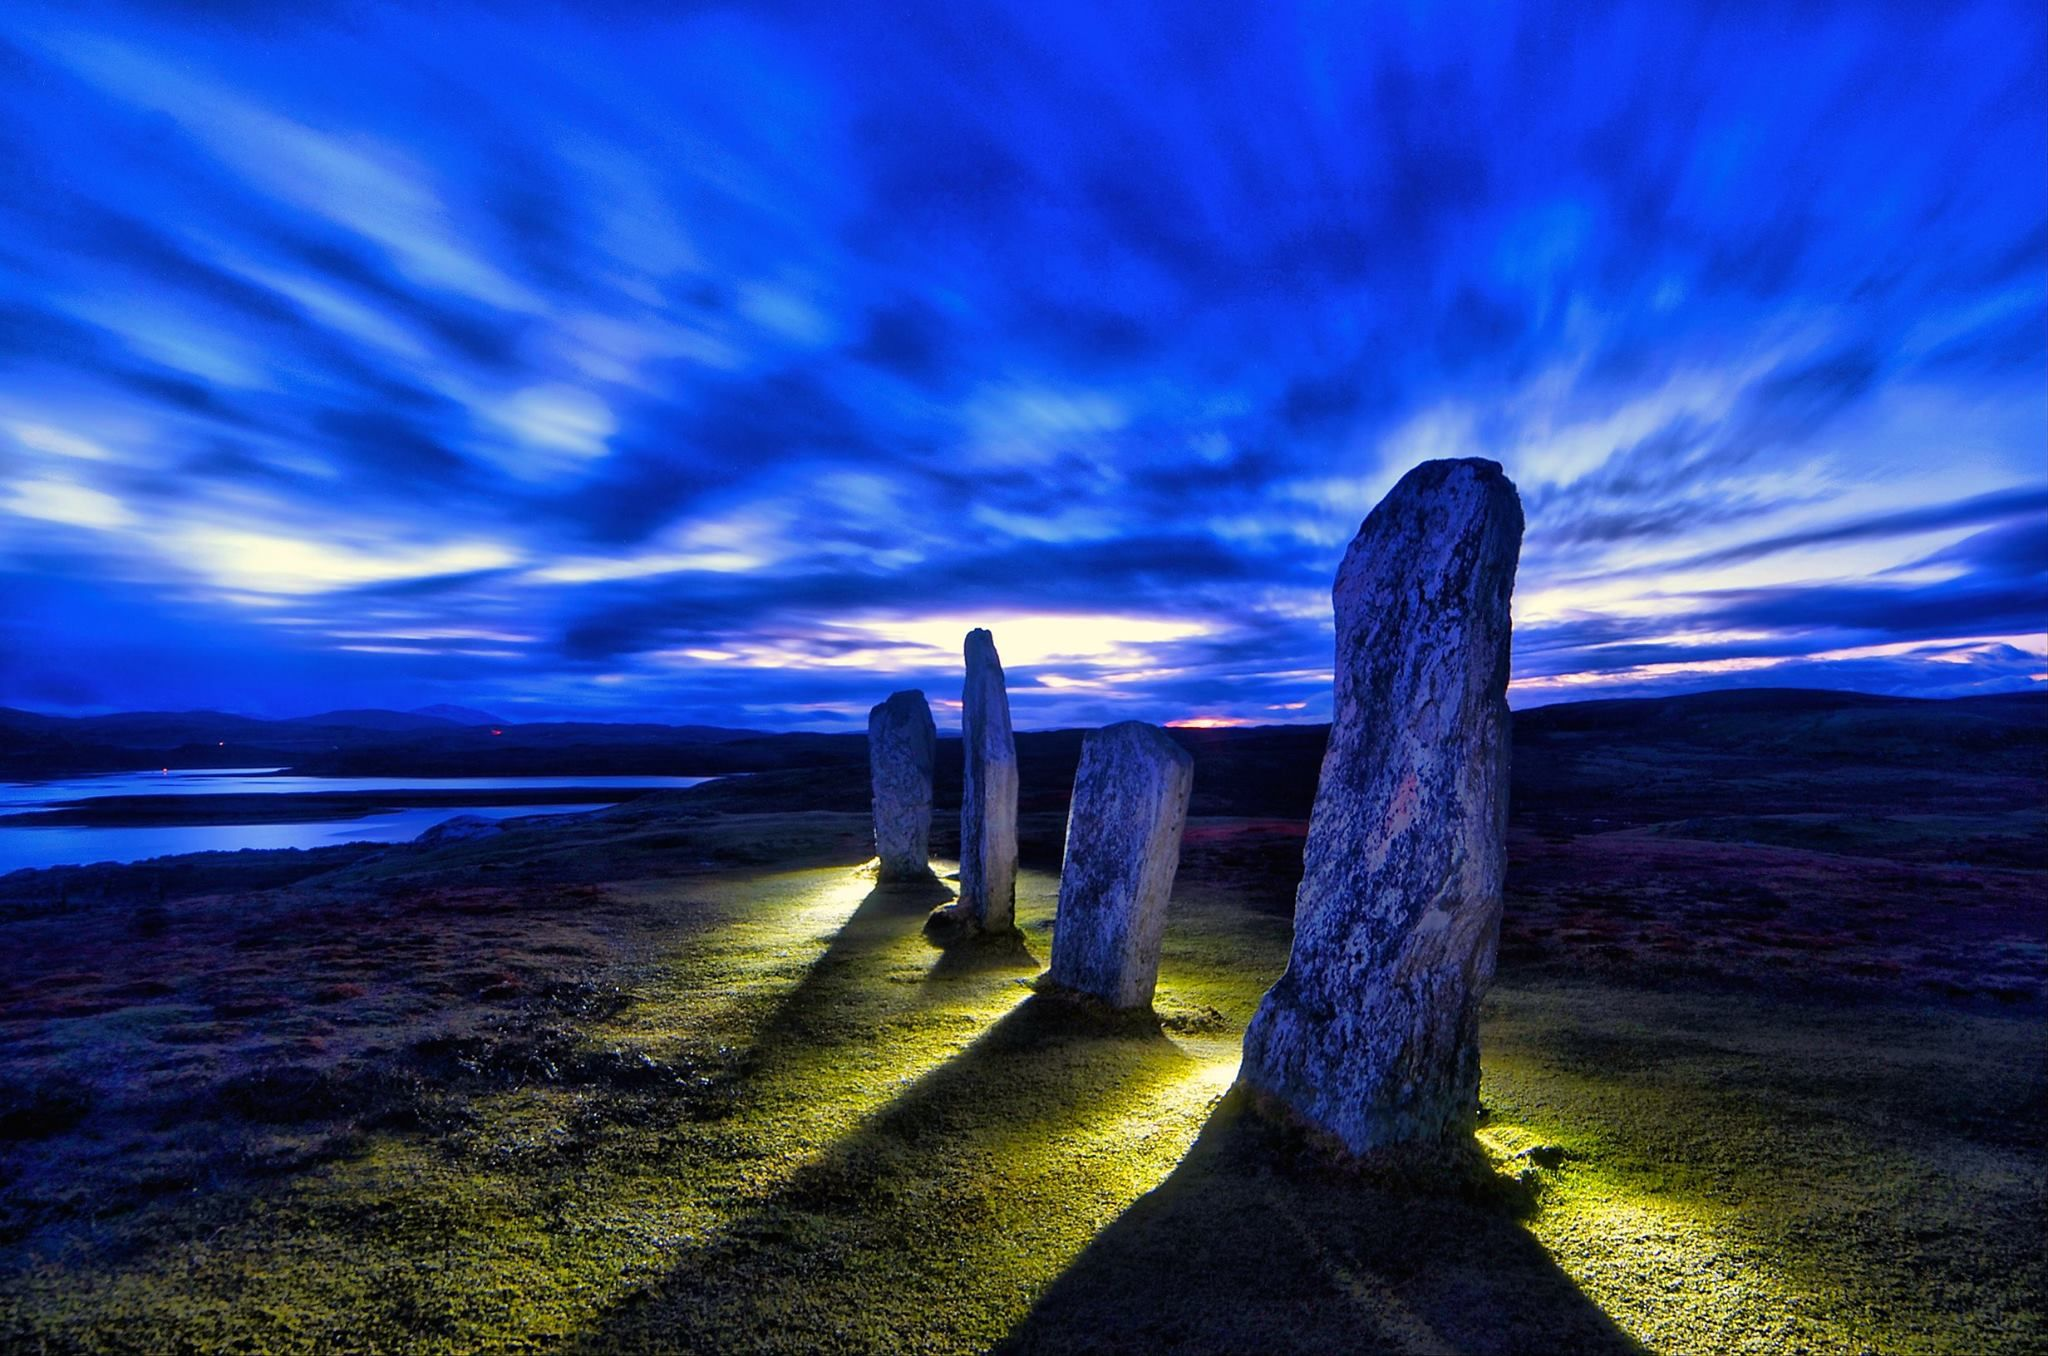 At attention for eternity !! Callanish stones, Chris Murray Photography